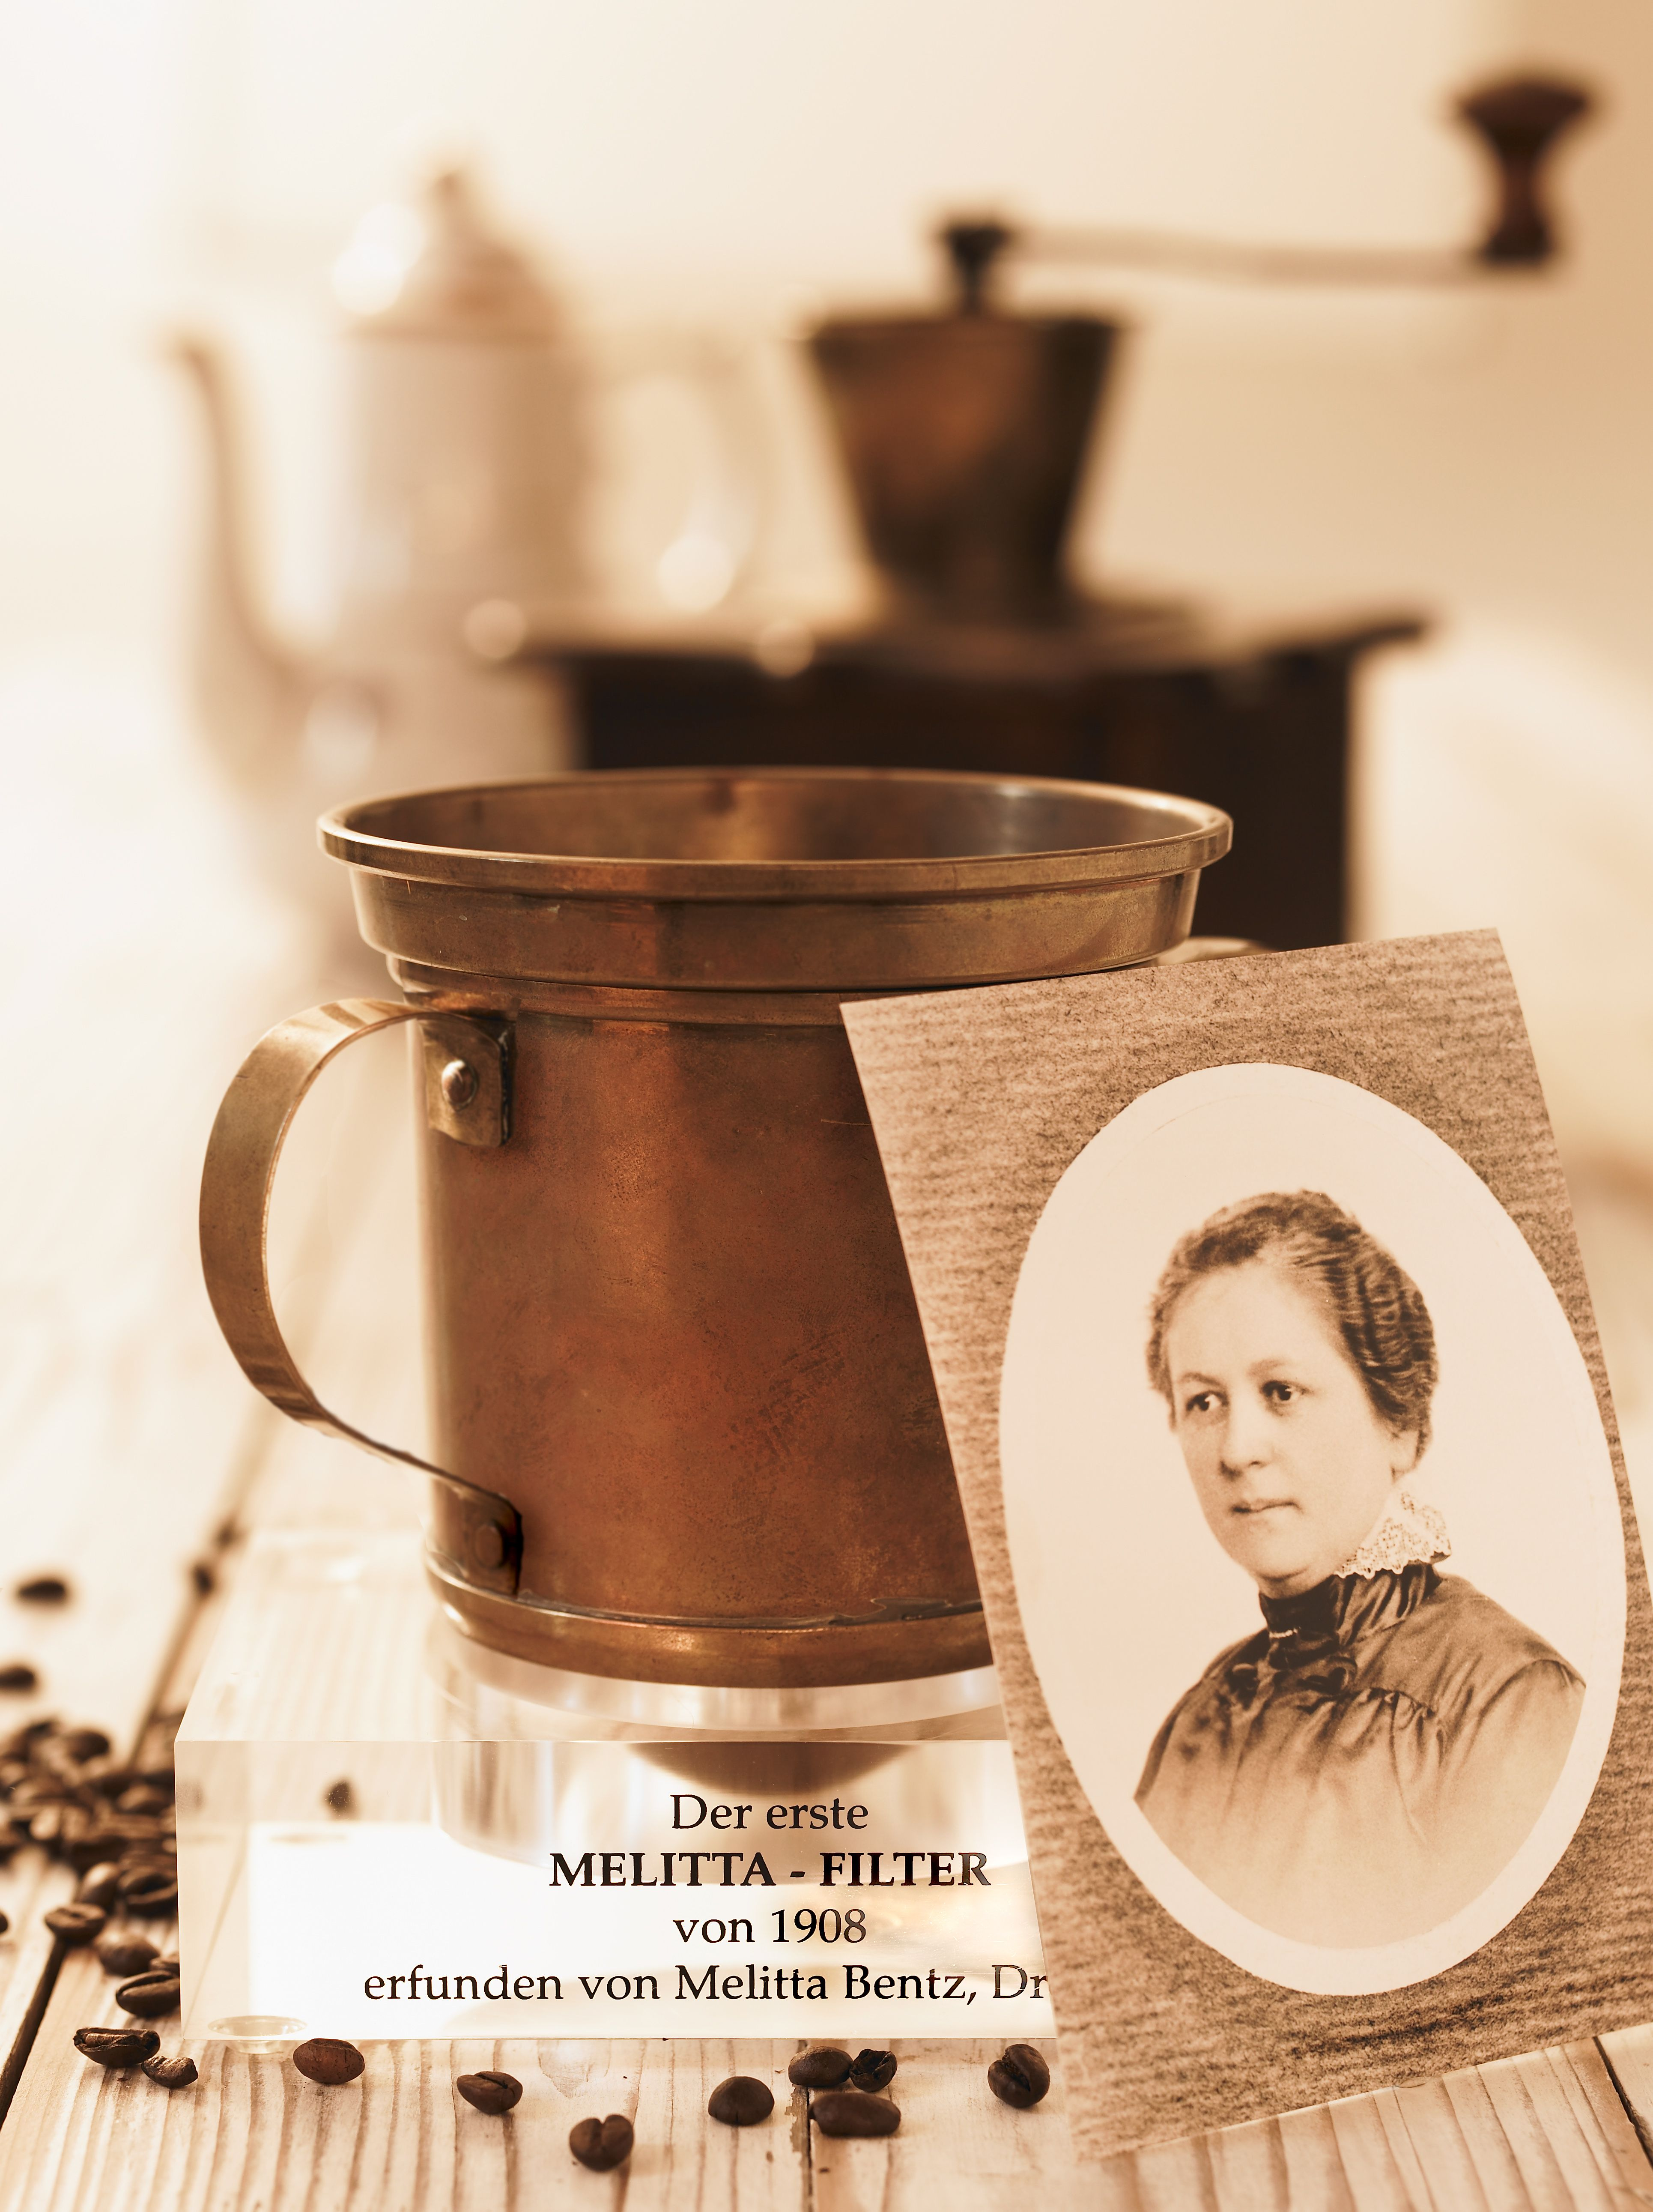 One Of Our Favorite Moms And Founder The Coffee Filter Melitta Bentz